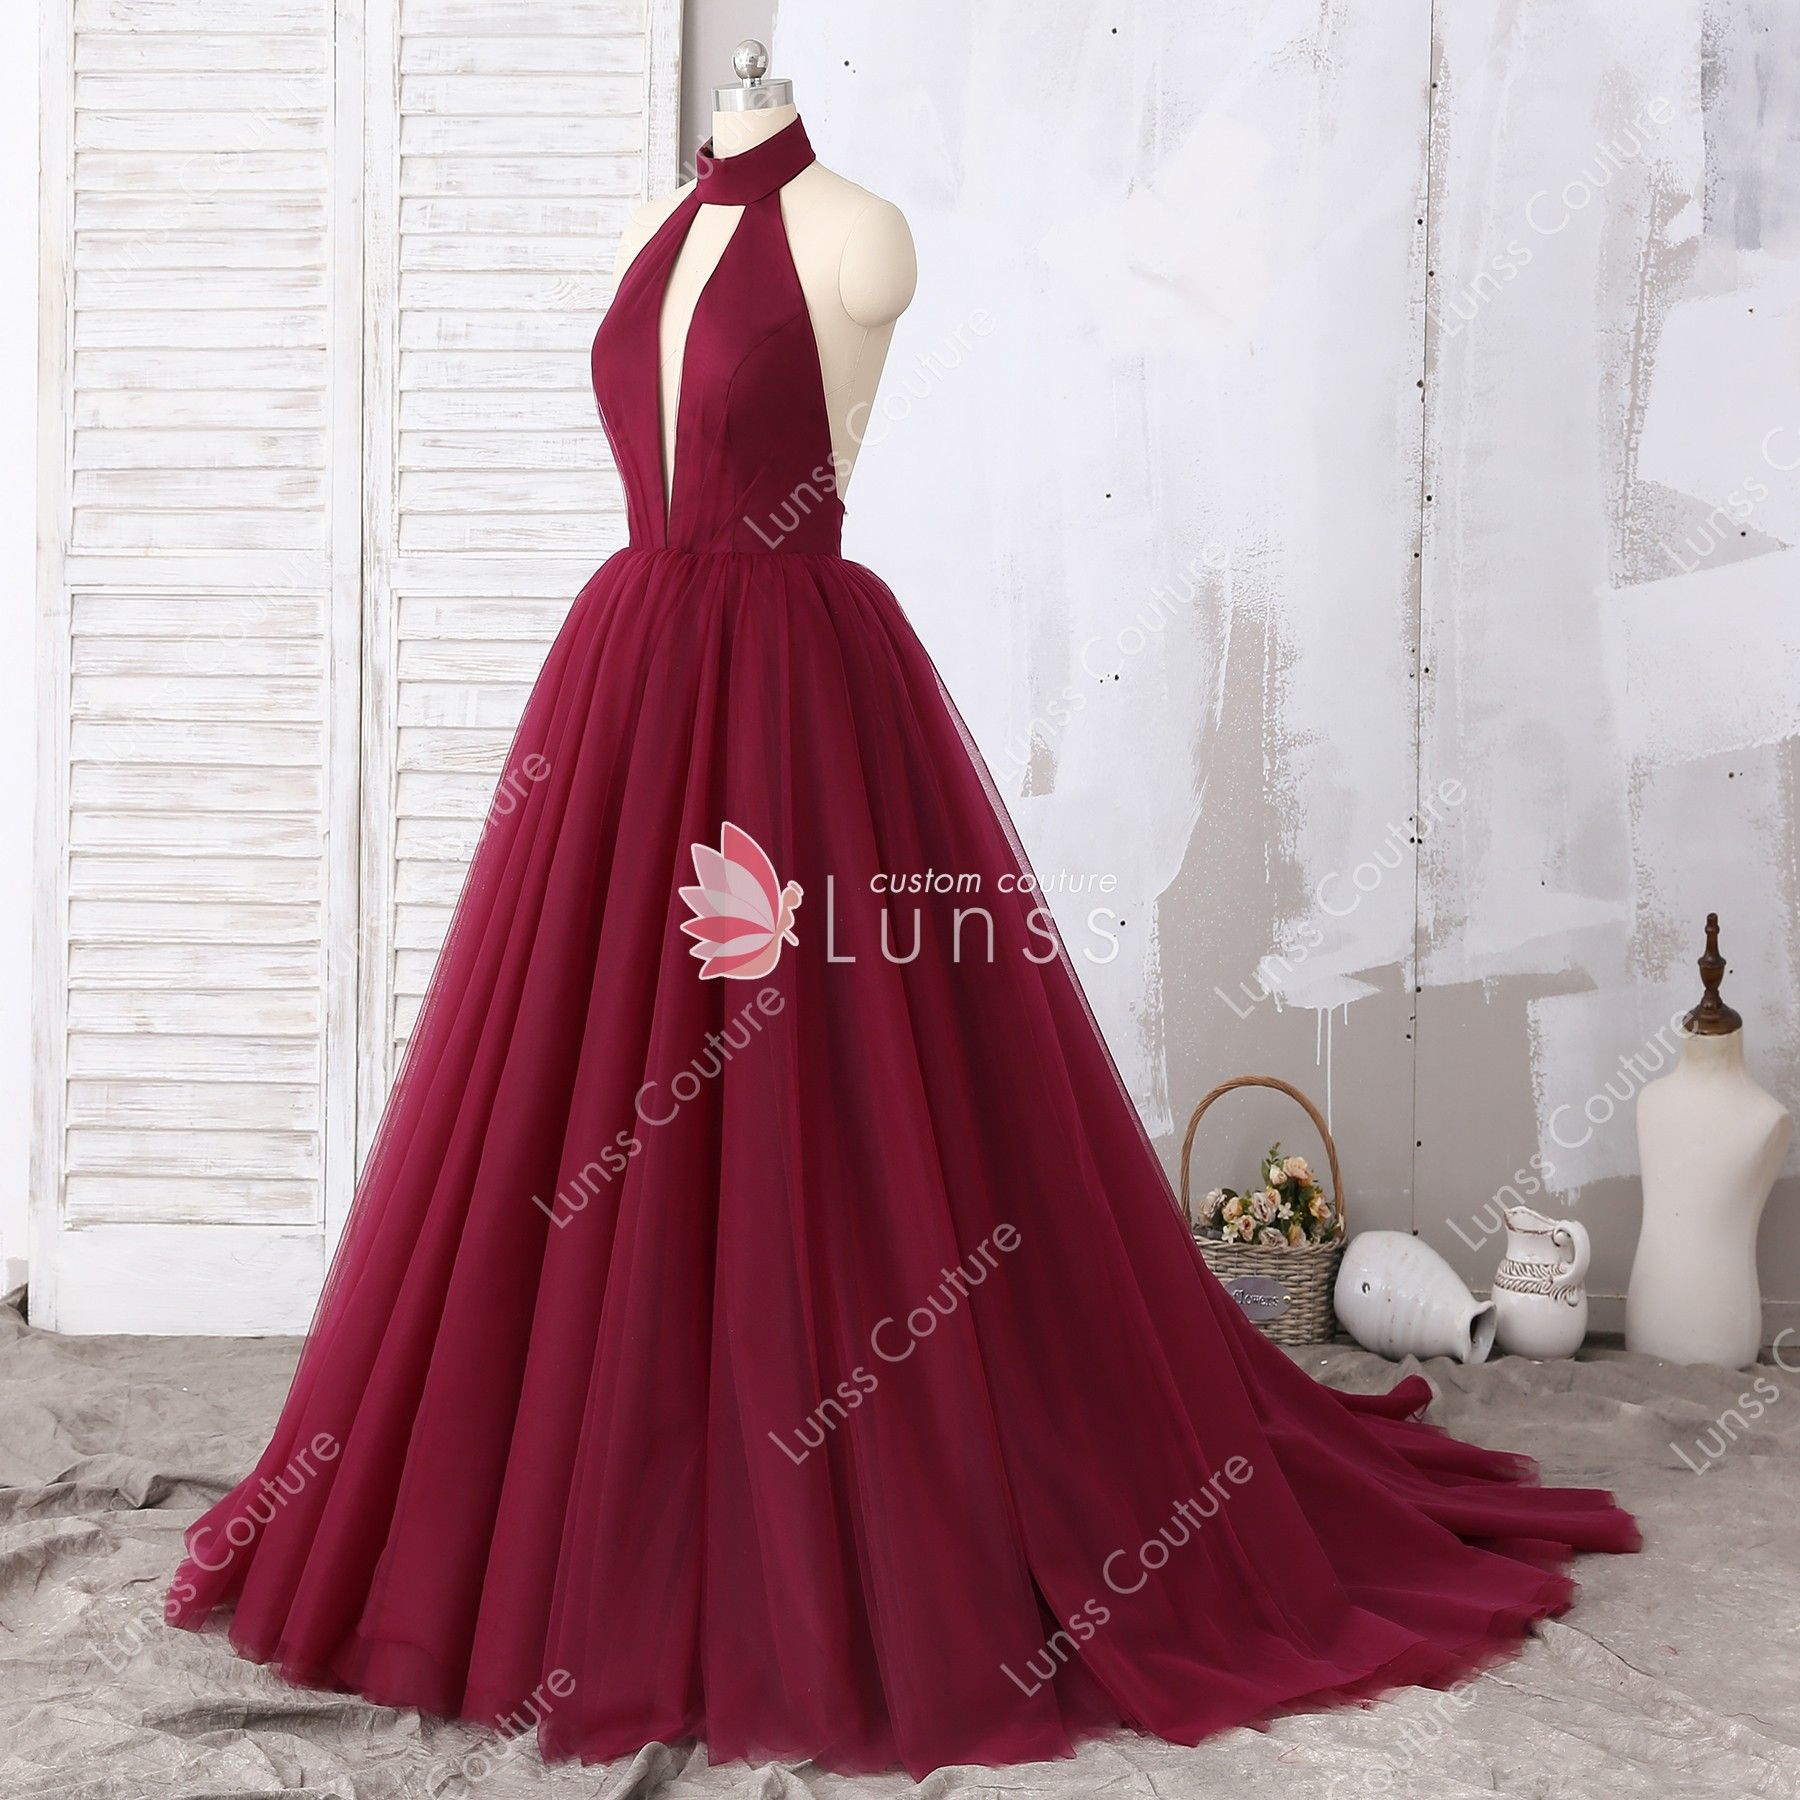 Burgundy Halter High Neck Plunging Tulle Ball Gown Puffy Prom Dress With Open Back Prom Dresses Ball Gown Prom Dress Inspiration Ball Gowns